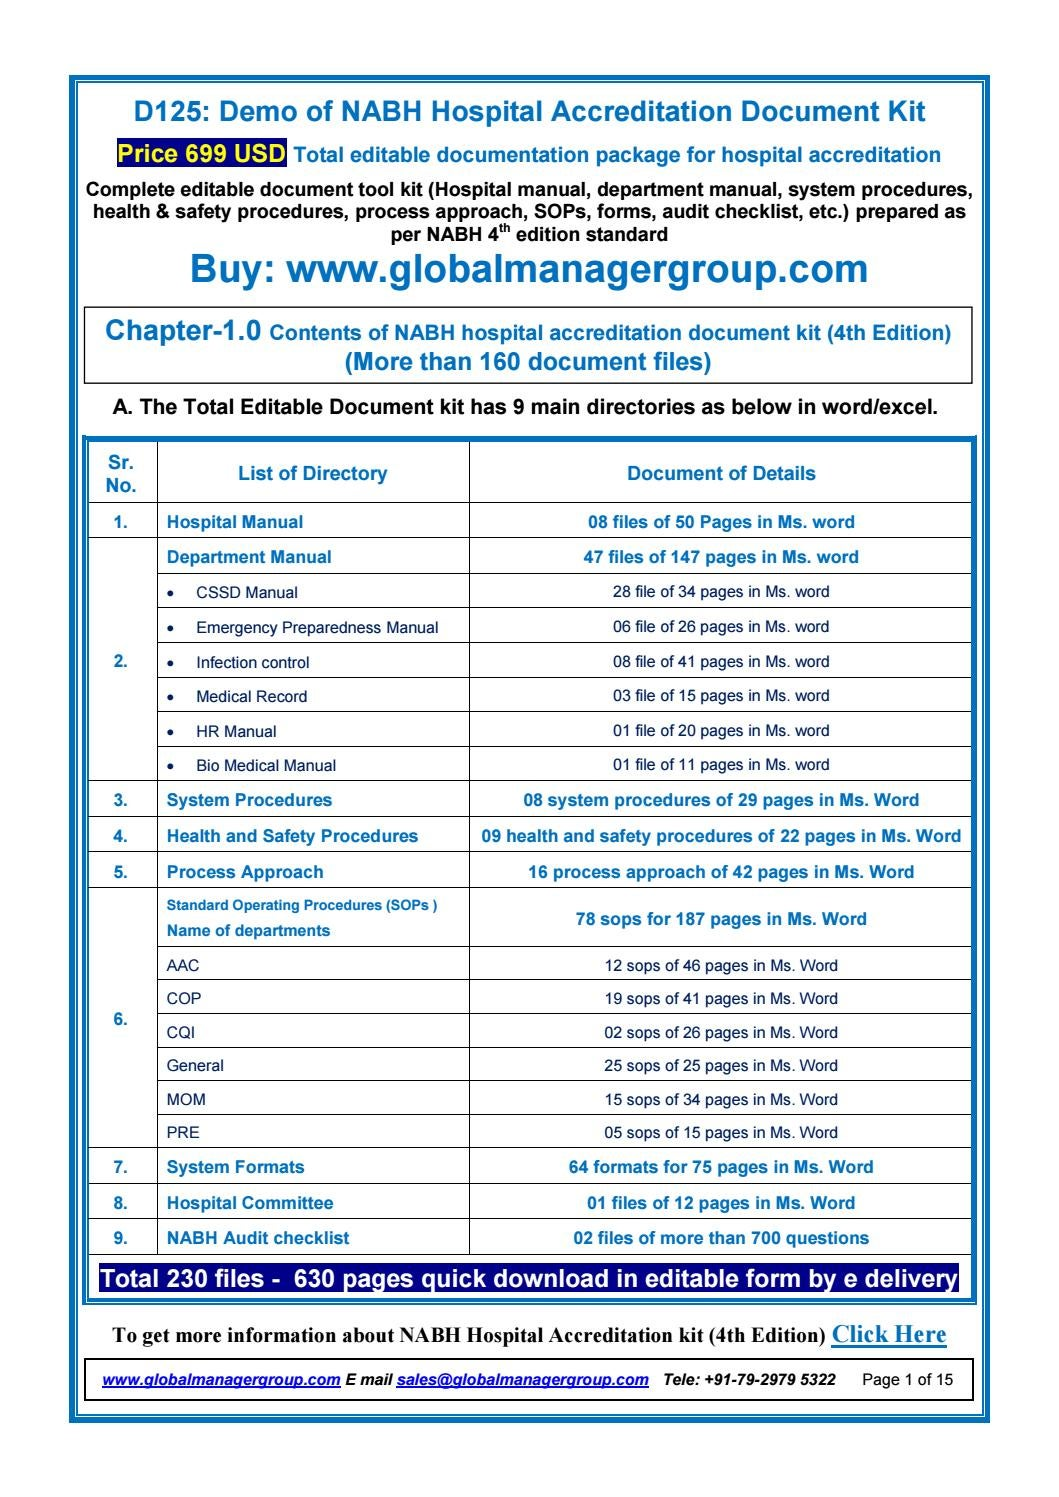 NABH Standard Documents by Global Manager Group - issuu